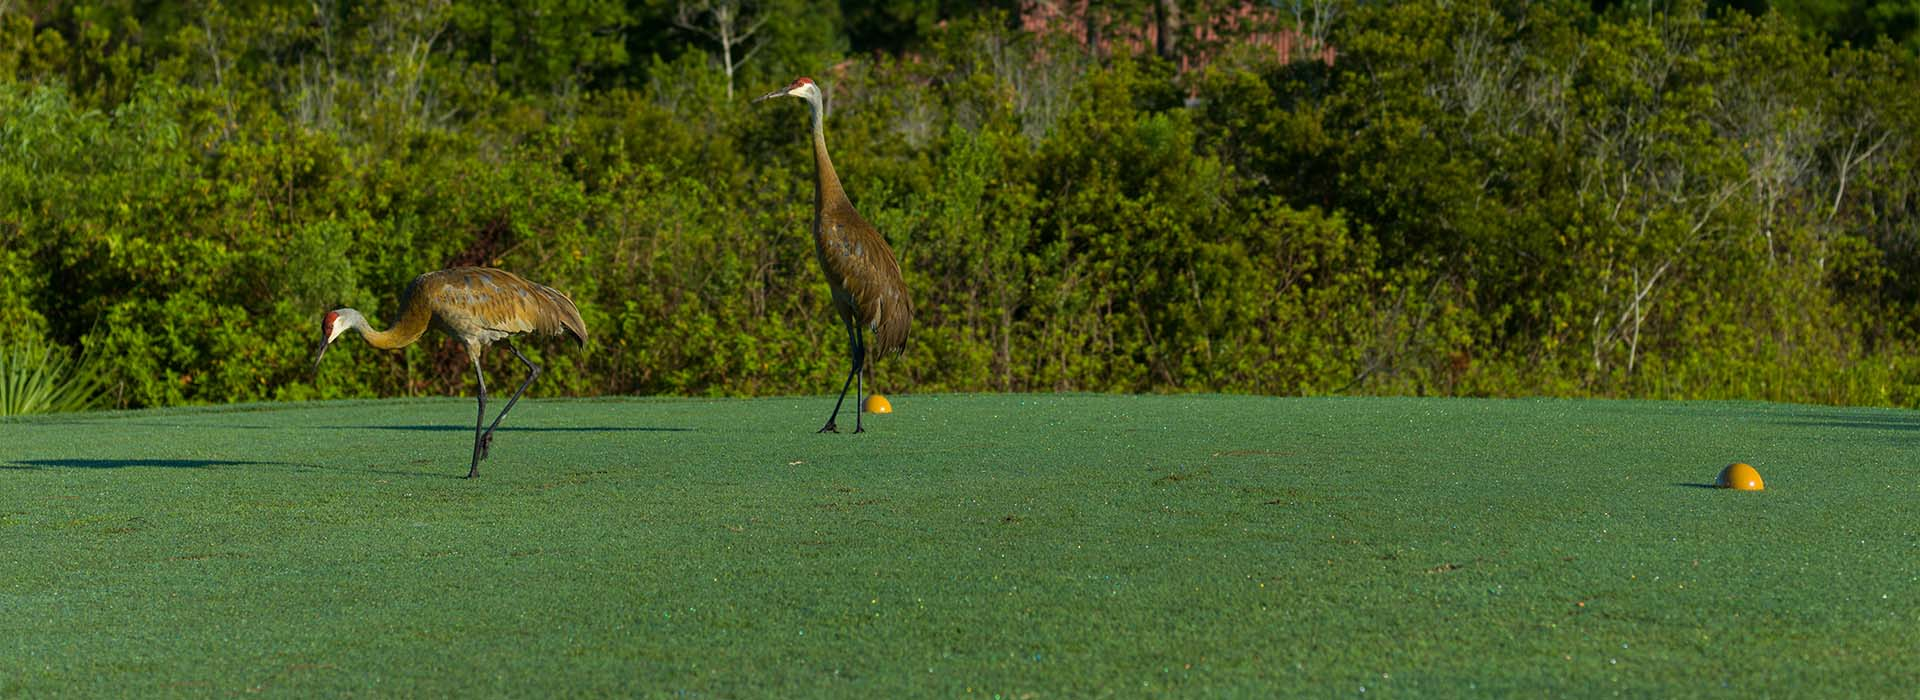 A couple of sandhill cranes are spotted on the course at St. Lucie Trail Golf Club in Port St. Lucie